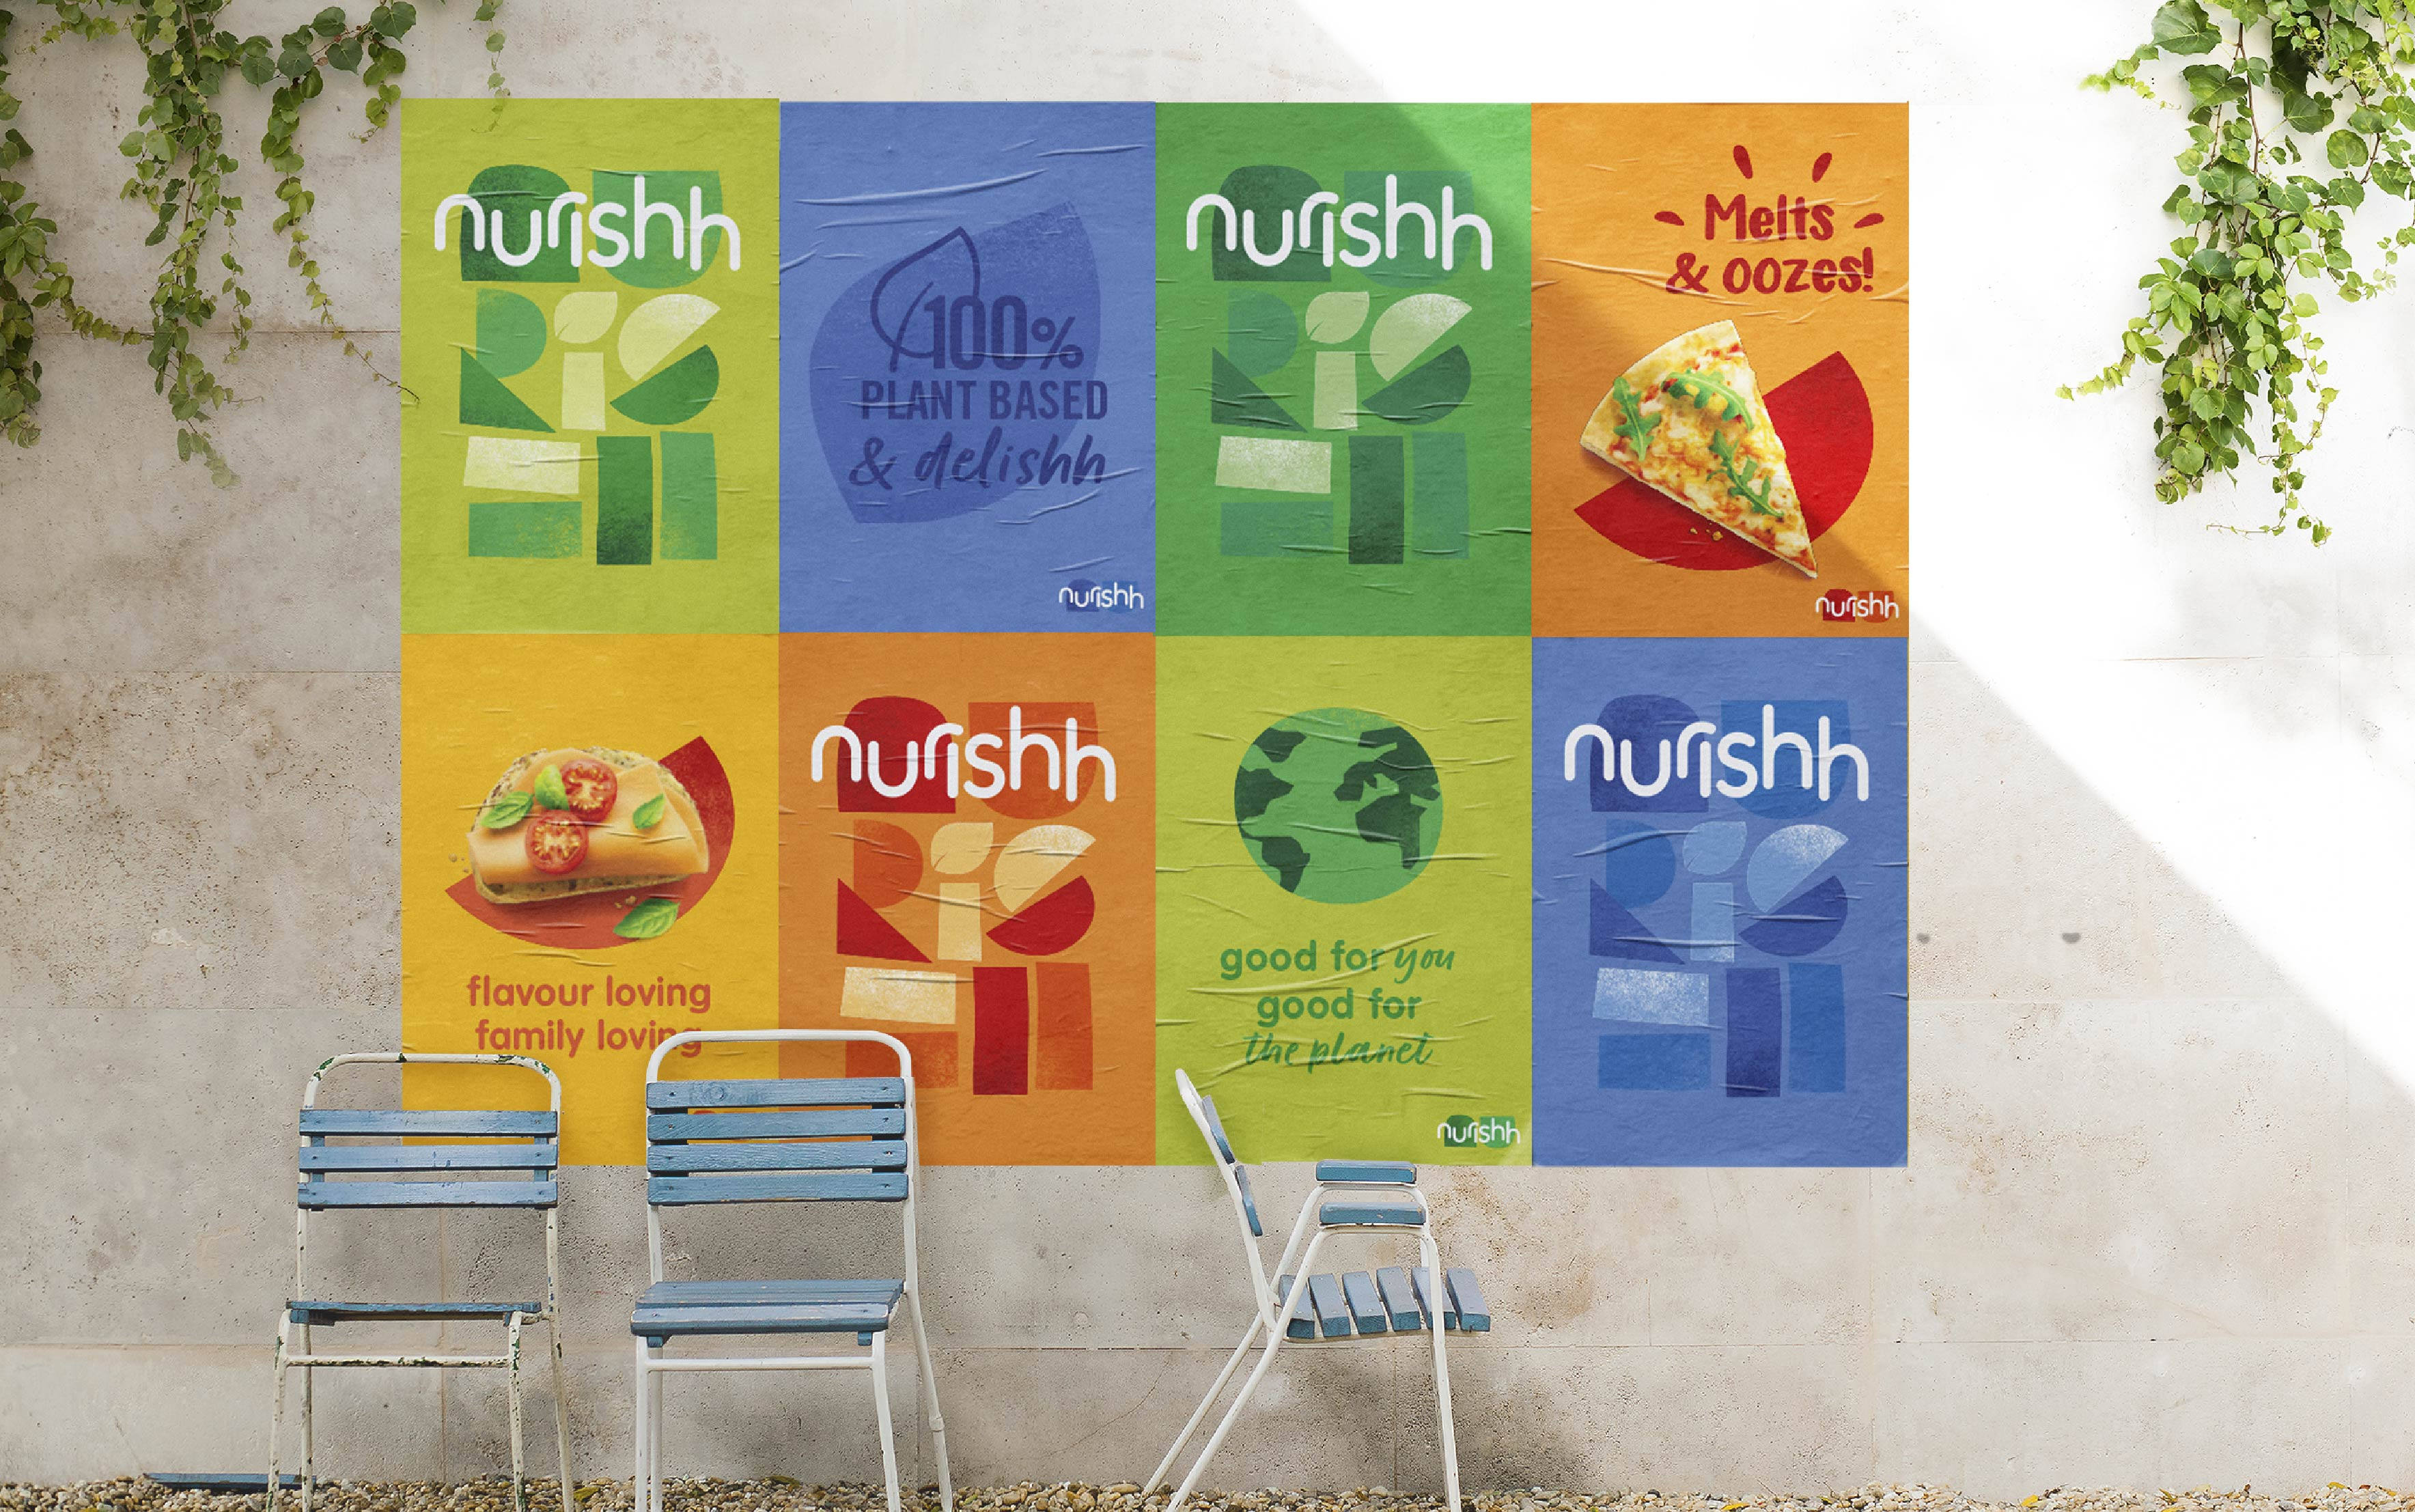 This Way Up Creates Global Brand for Groupe Bel Plant-based Cheese Range, Nurishh